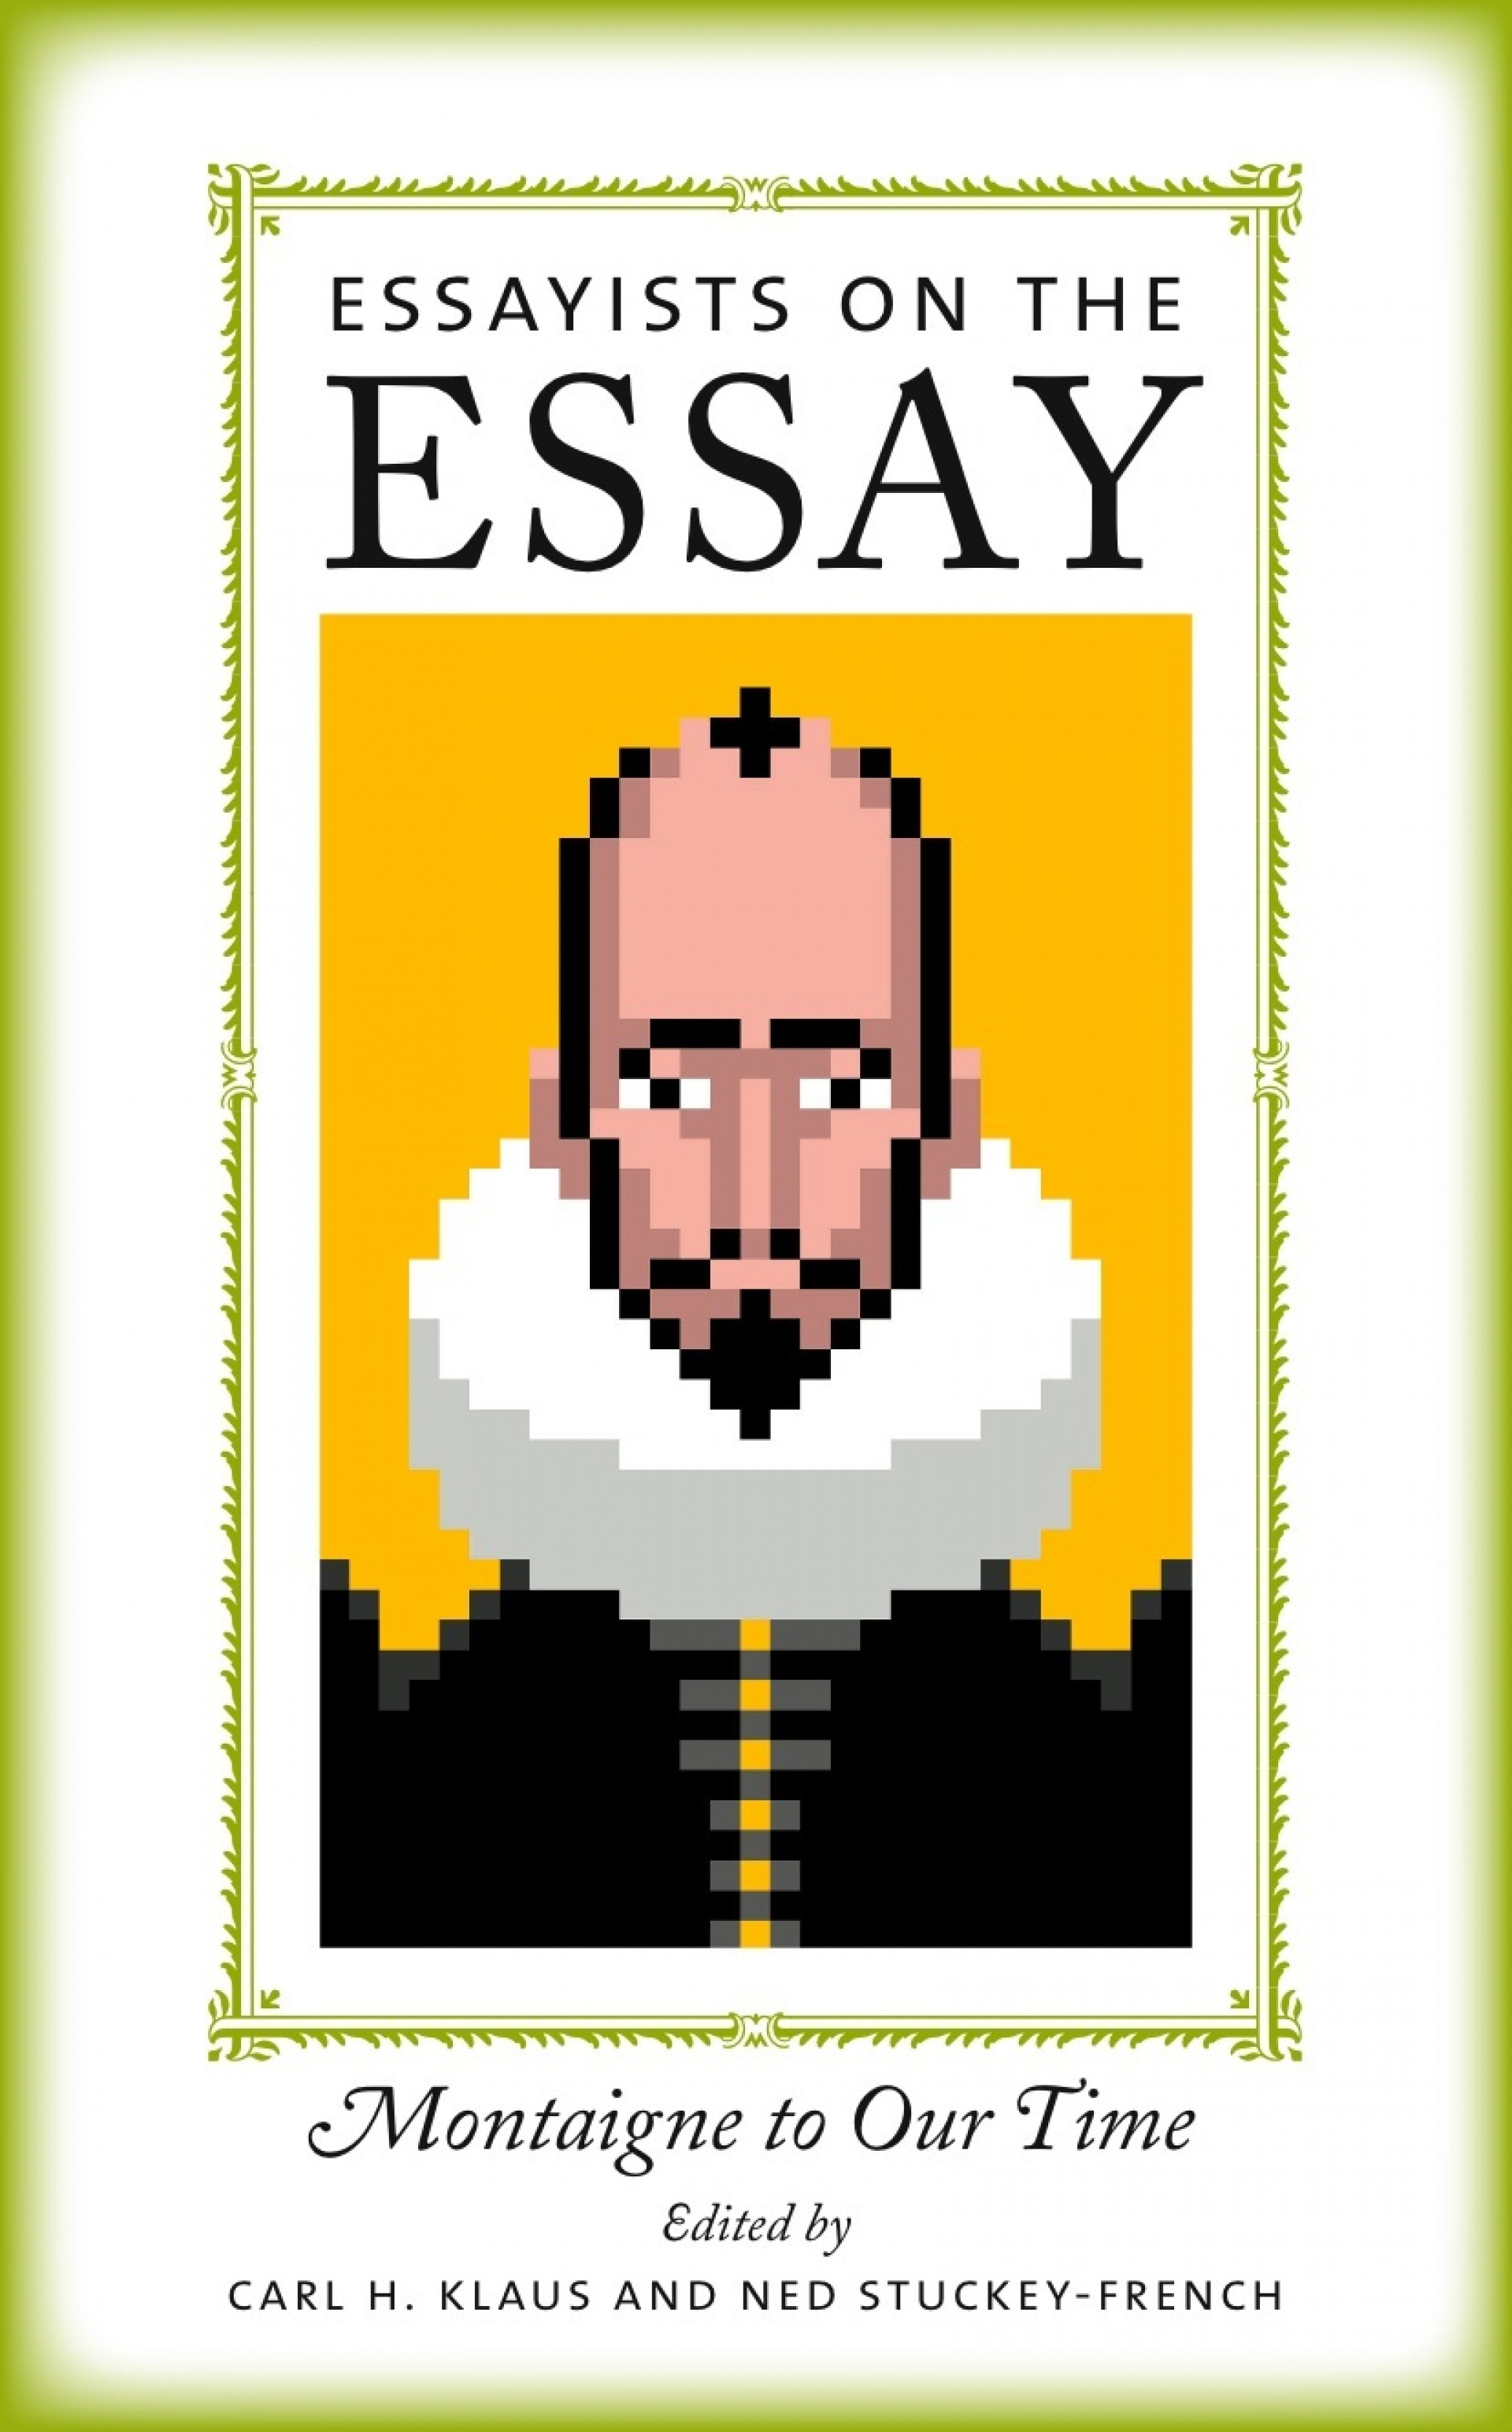 024 Essay Example It Gets Worse Collection Of Essays Essayists On The Impressive A Free Download Epub Audiobook 1920